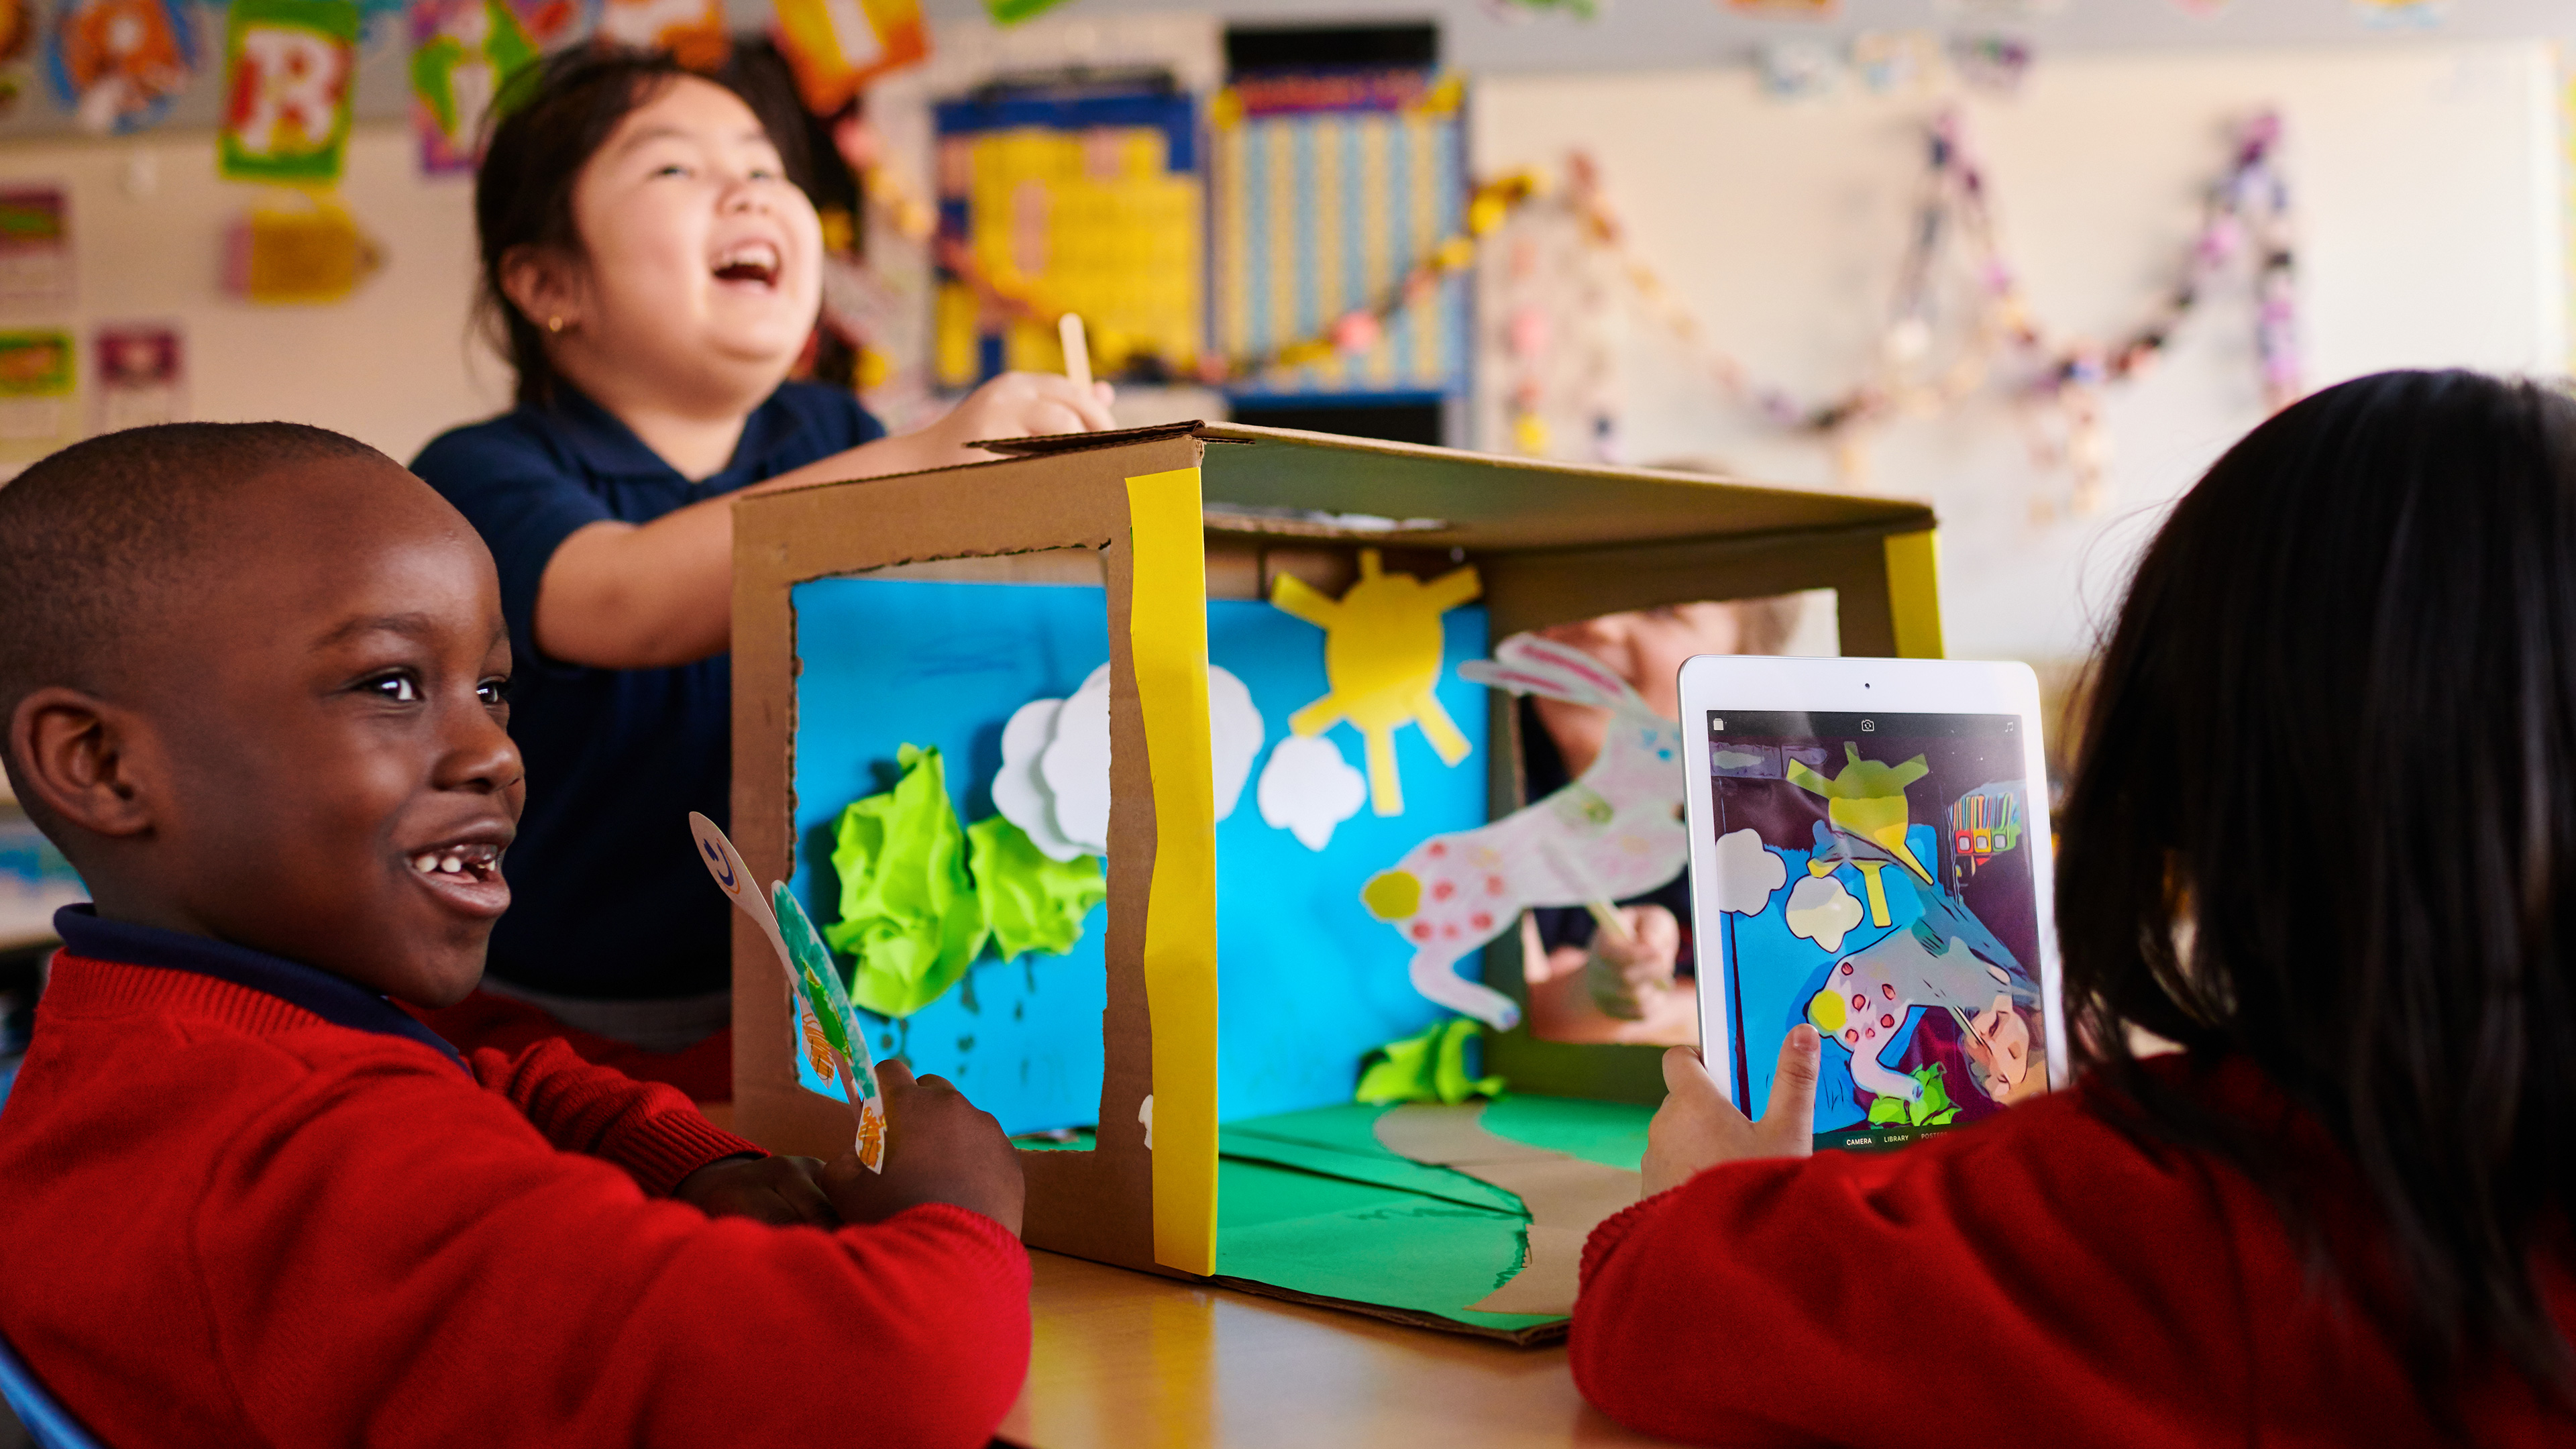 Game programs for children are aimed at revealing creativity